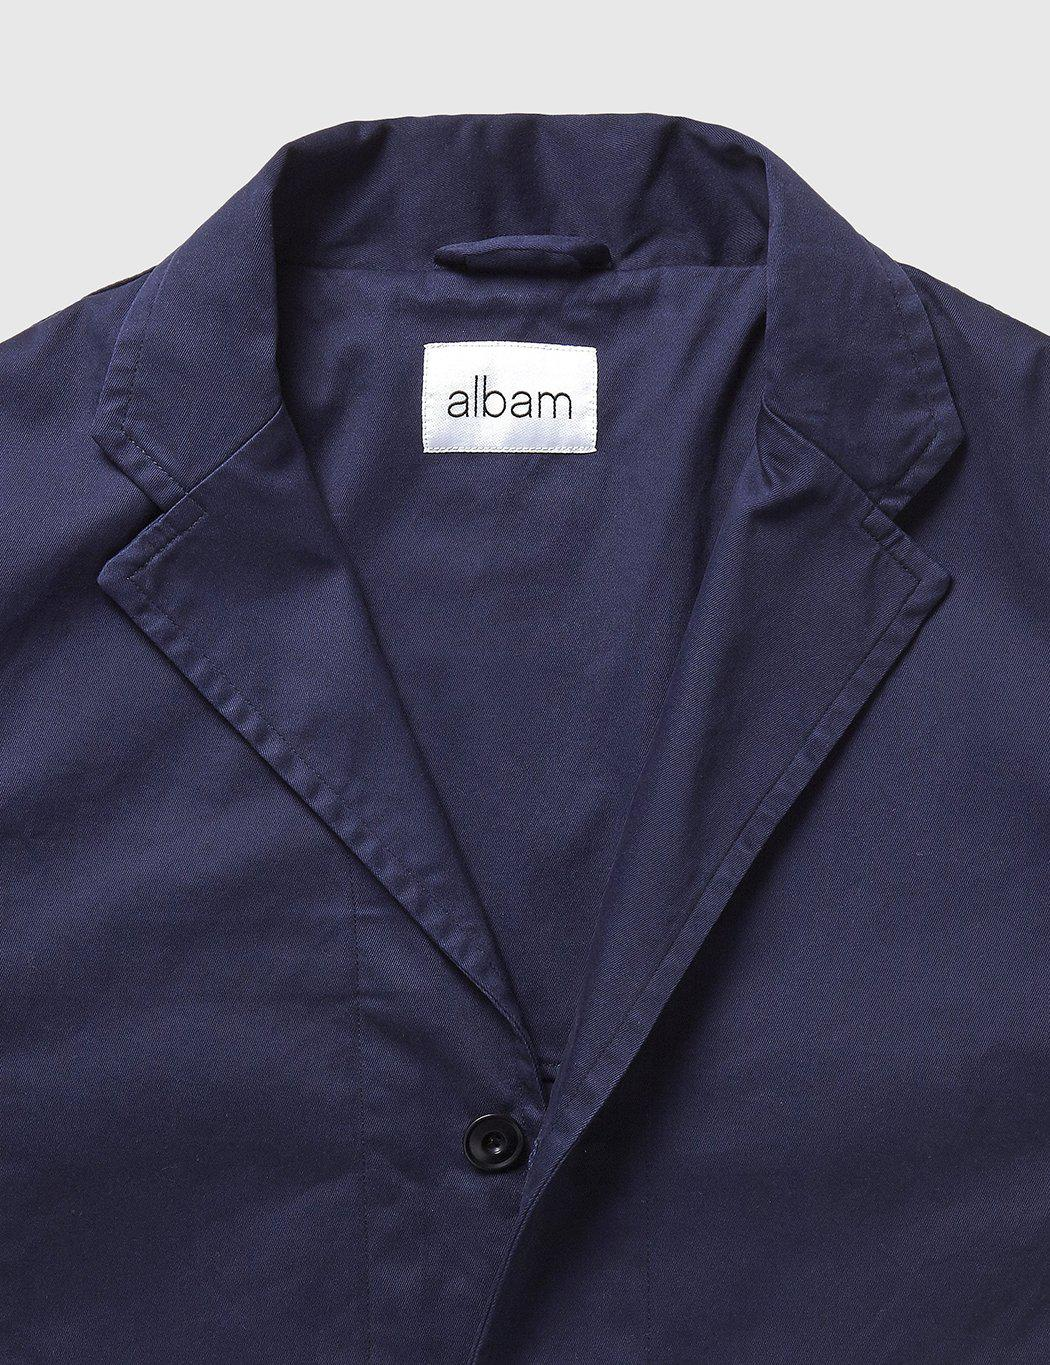 Albam Casual Blazer In Blue For Men Lyst